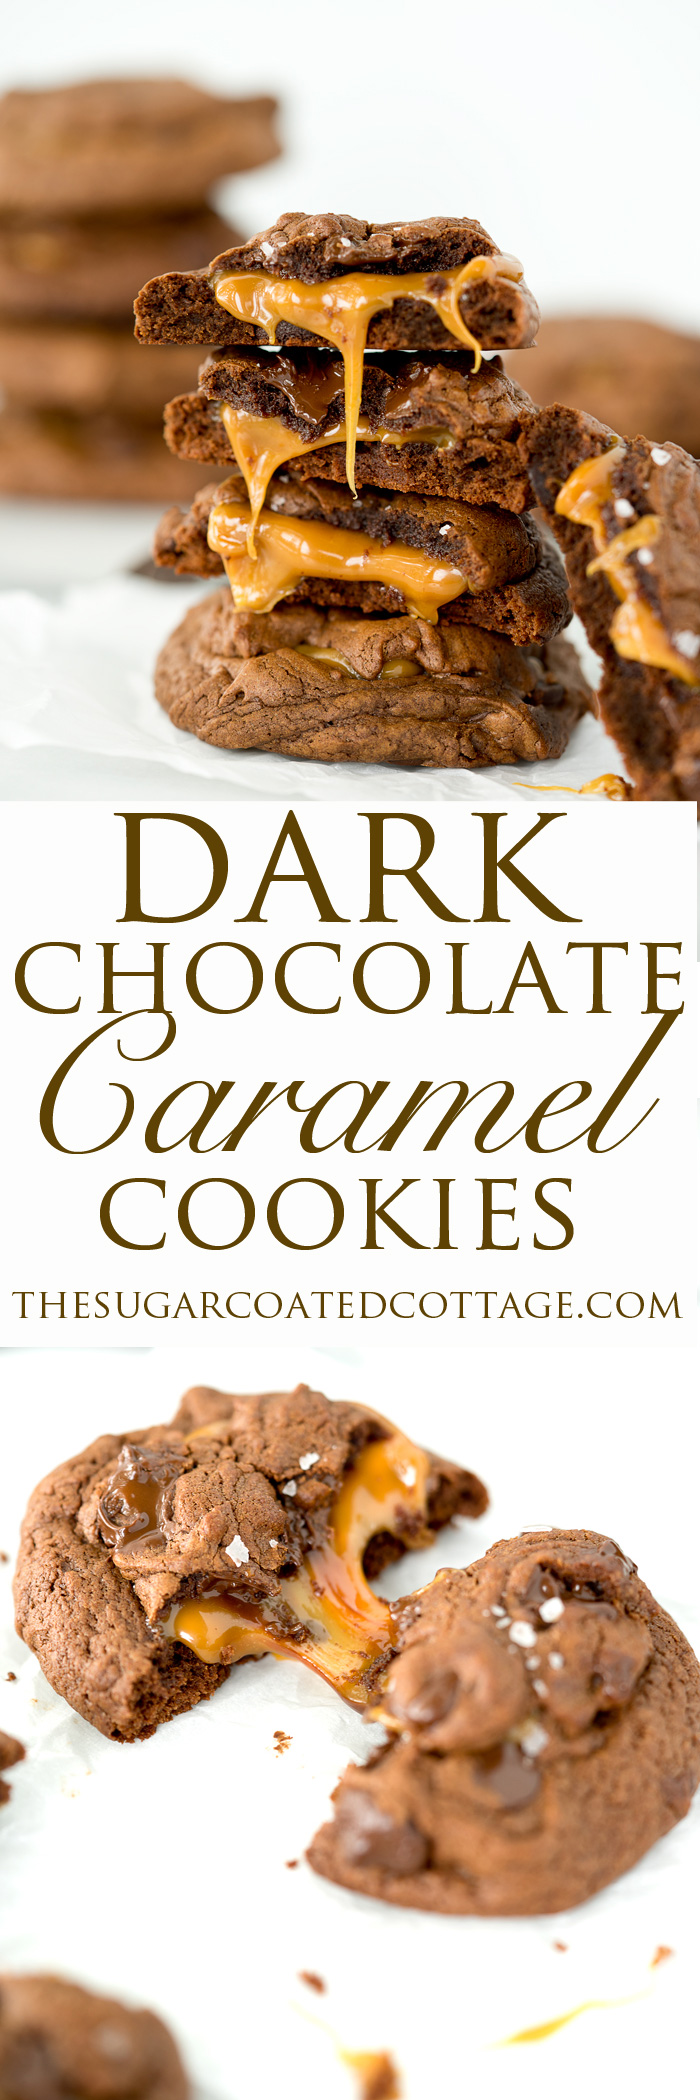 Dark Chocolate Caramel Stuffed Cookies. The best cookie recipe ever! Deep, dark chocolate. Gooey caramel and a sprinkling of flaky sea salt. | thesugarcoatedcottage.com